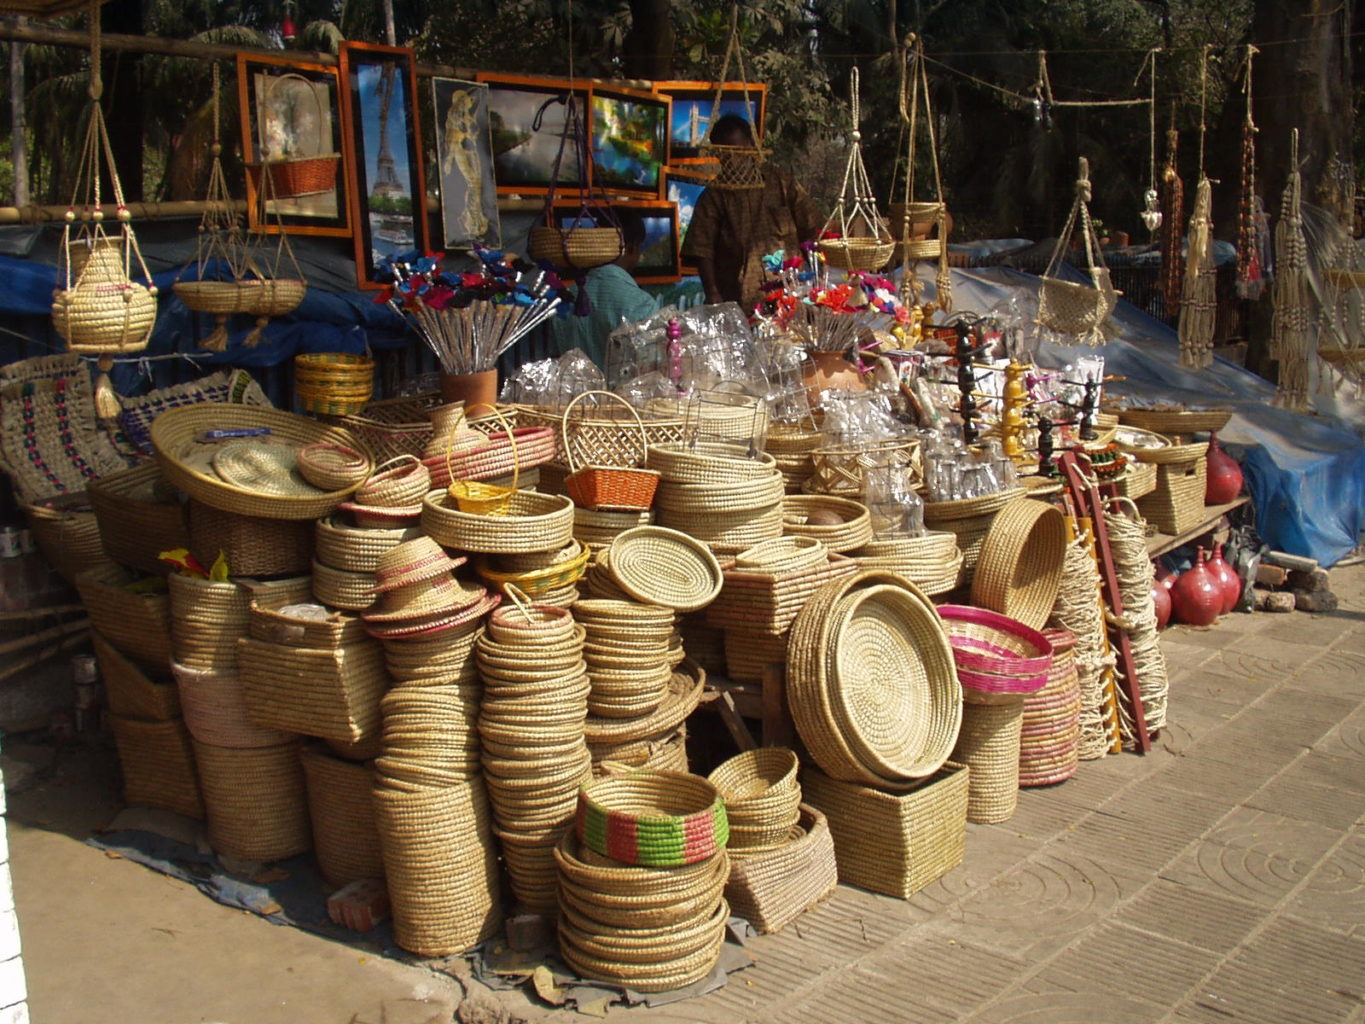 feature handicrafts - Artisanal Products and Where to Find Them